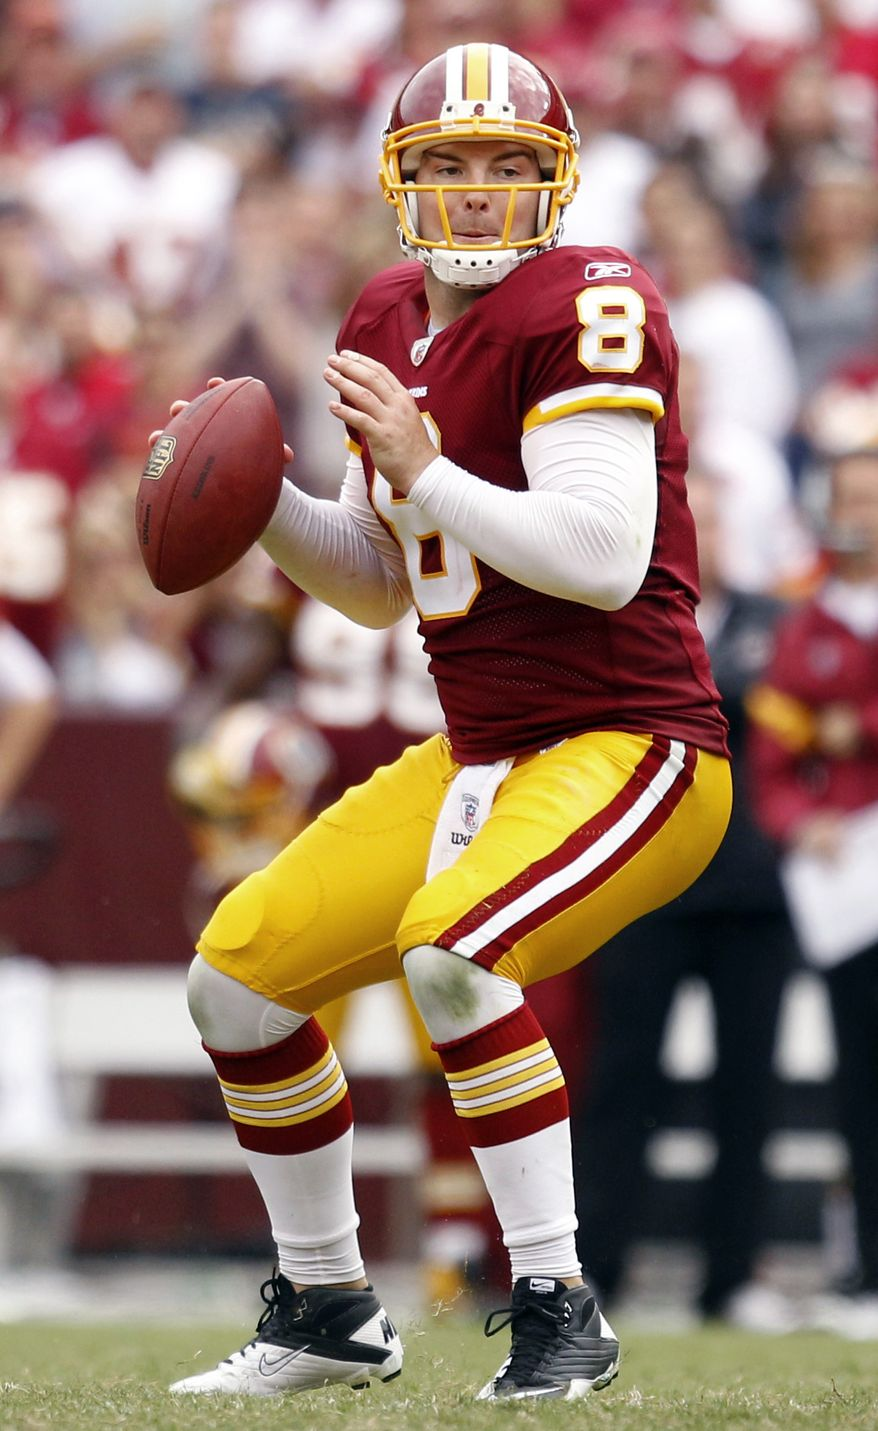 Washington Redskins quarterback Rex Grossman looks for a receiver in the second half of an NFL football game against the Arizona Cardinals in Landover, Md., Sunday, Sept. 18, 2011. (AP Photo/Evan Vucci)